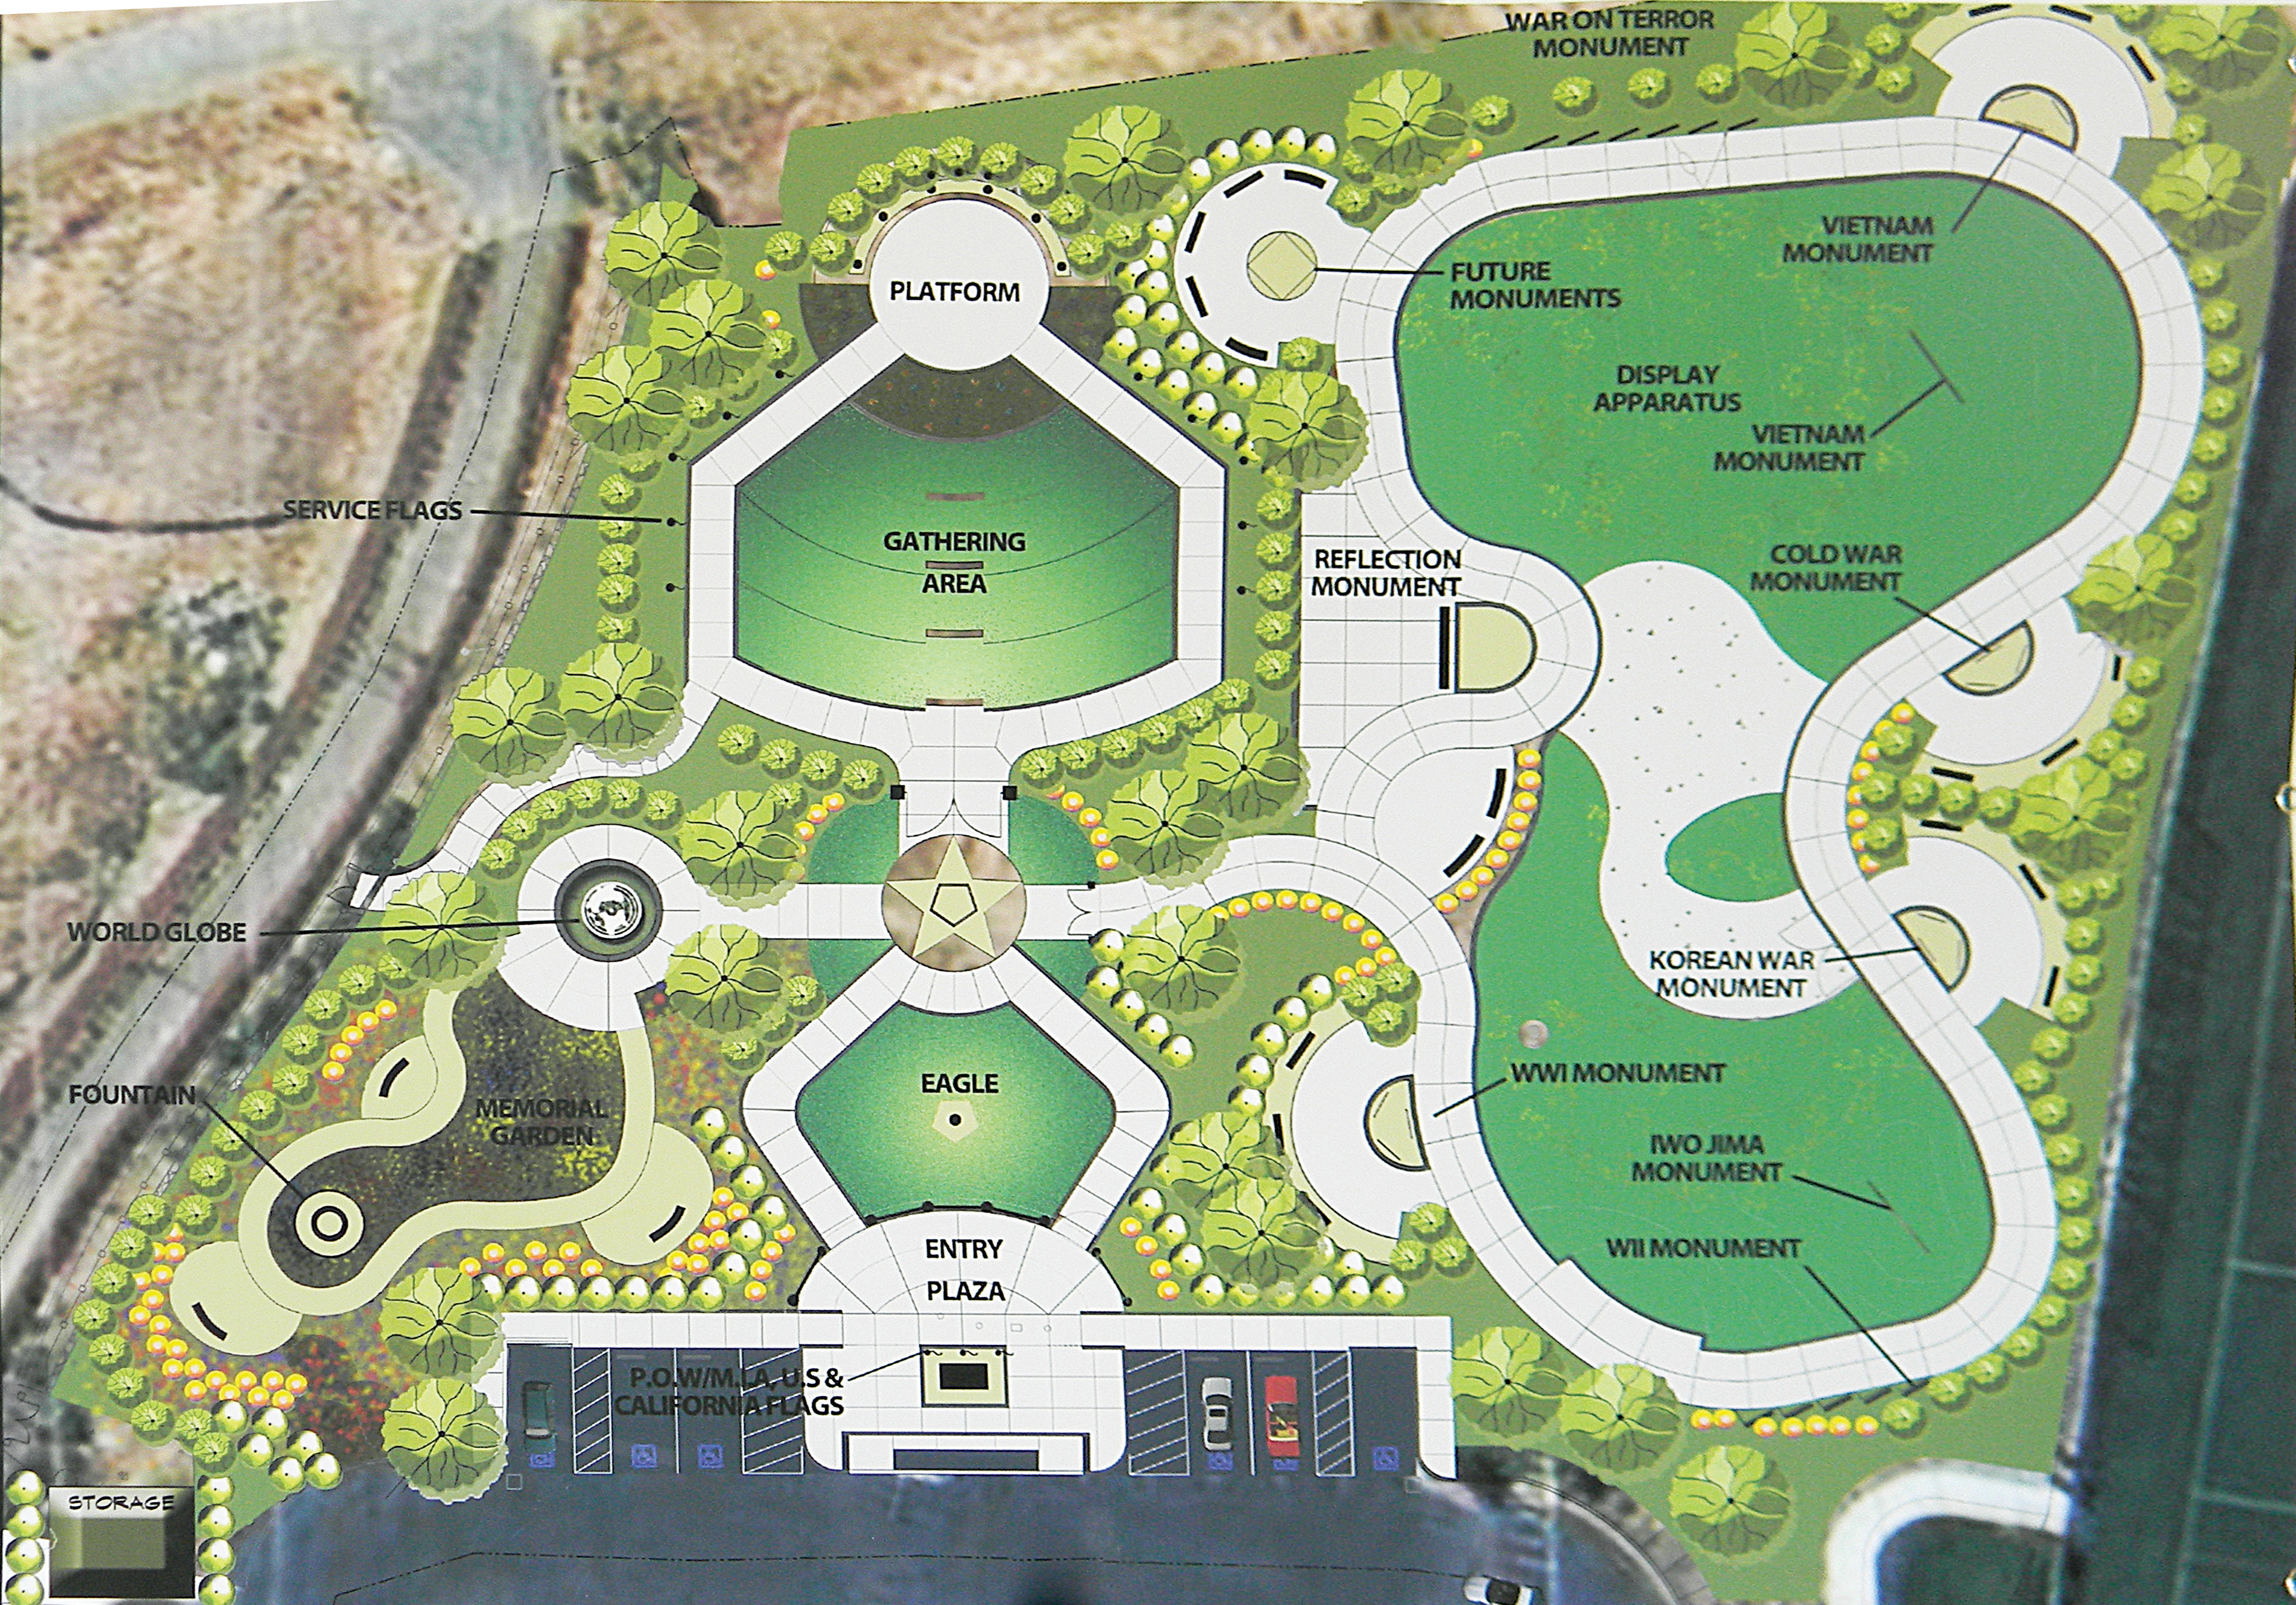 Veterans Memorial Park Plans Call For A Memorial Garden, Courtyard And A  100 Year Journey Through American Conflicts. Courtesy Graphic